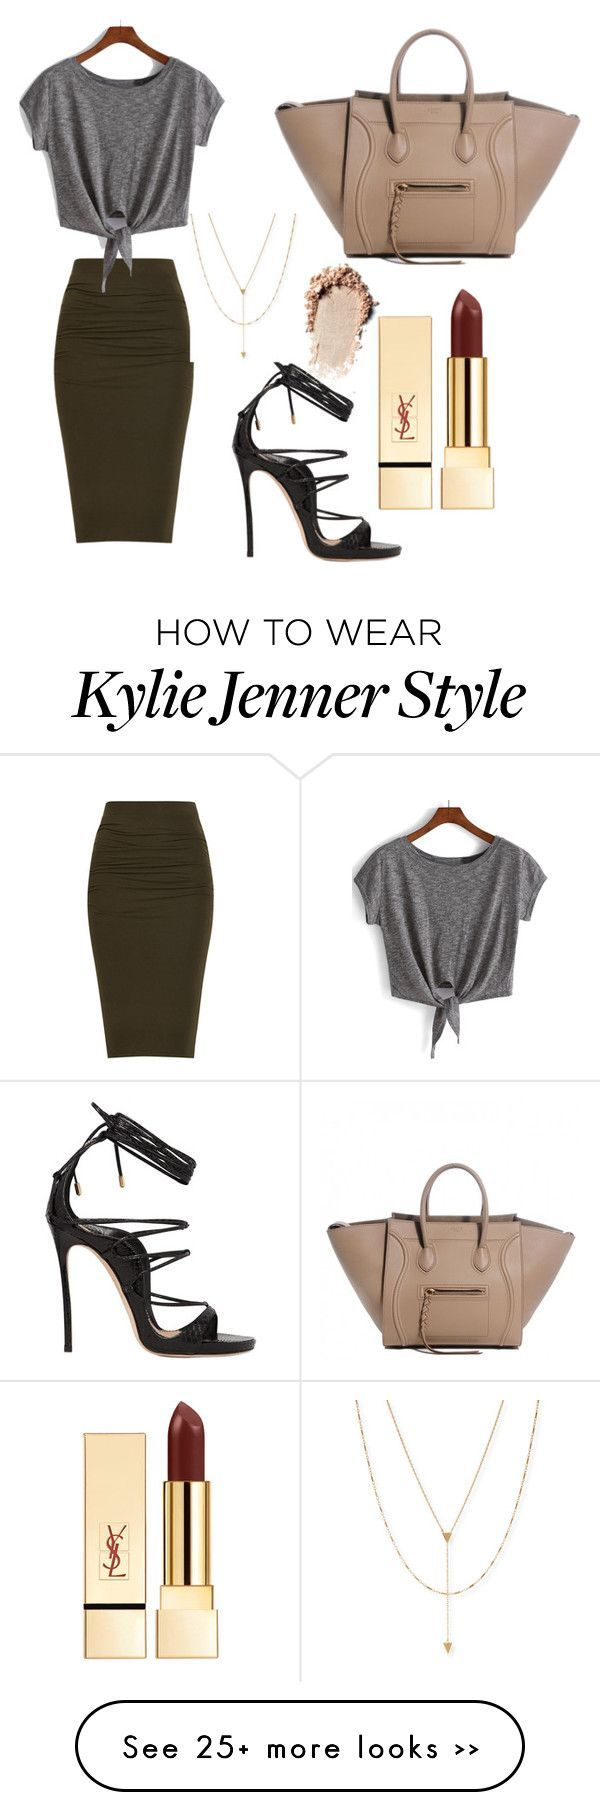 How to get Kylie jenner style